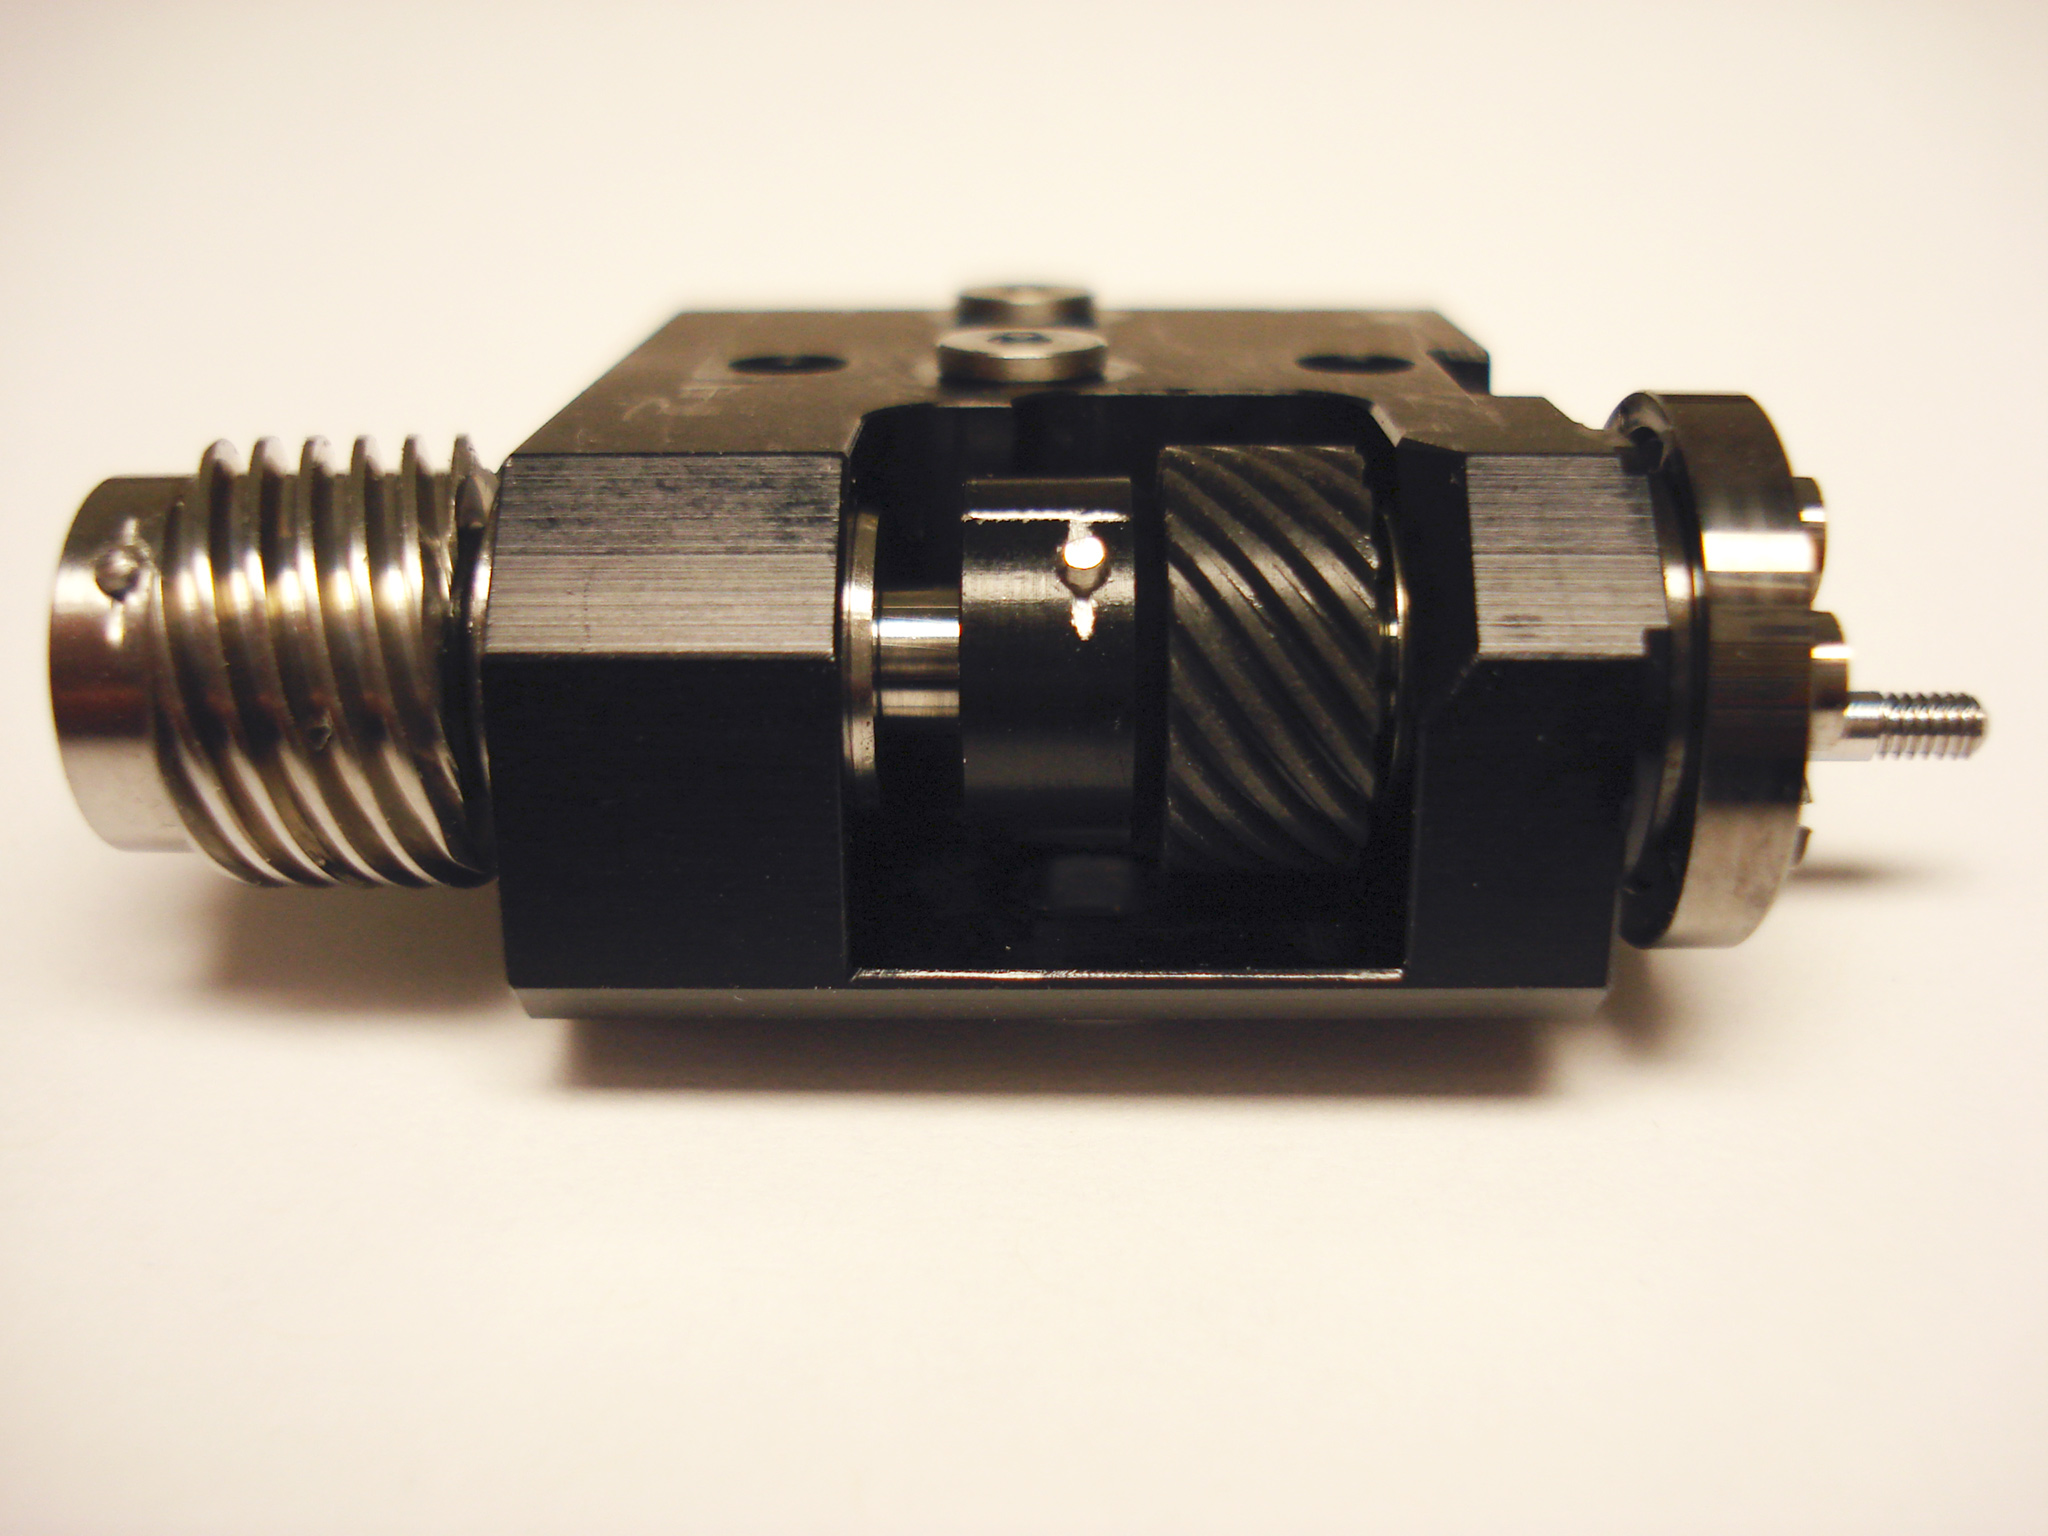 AATON 16 XTR PROD CLAW SHAFT MECHANISM